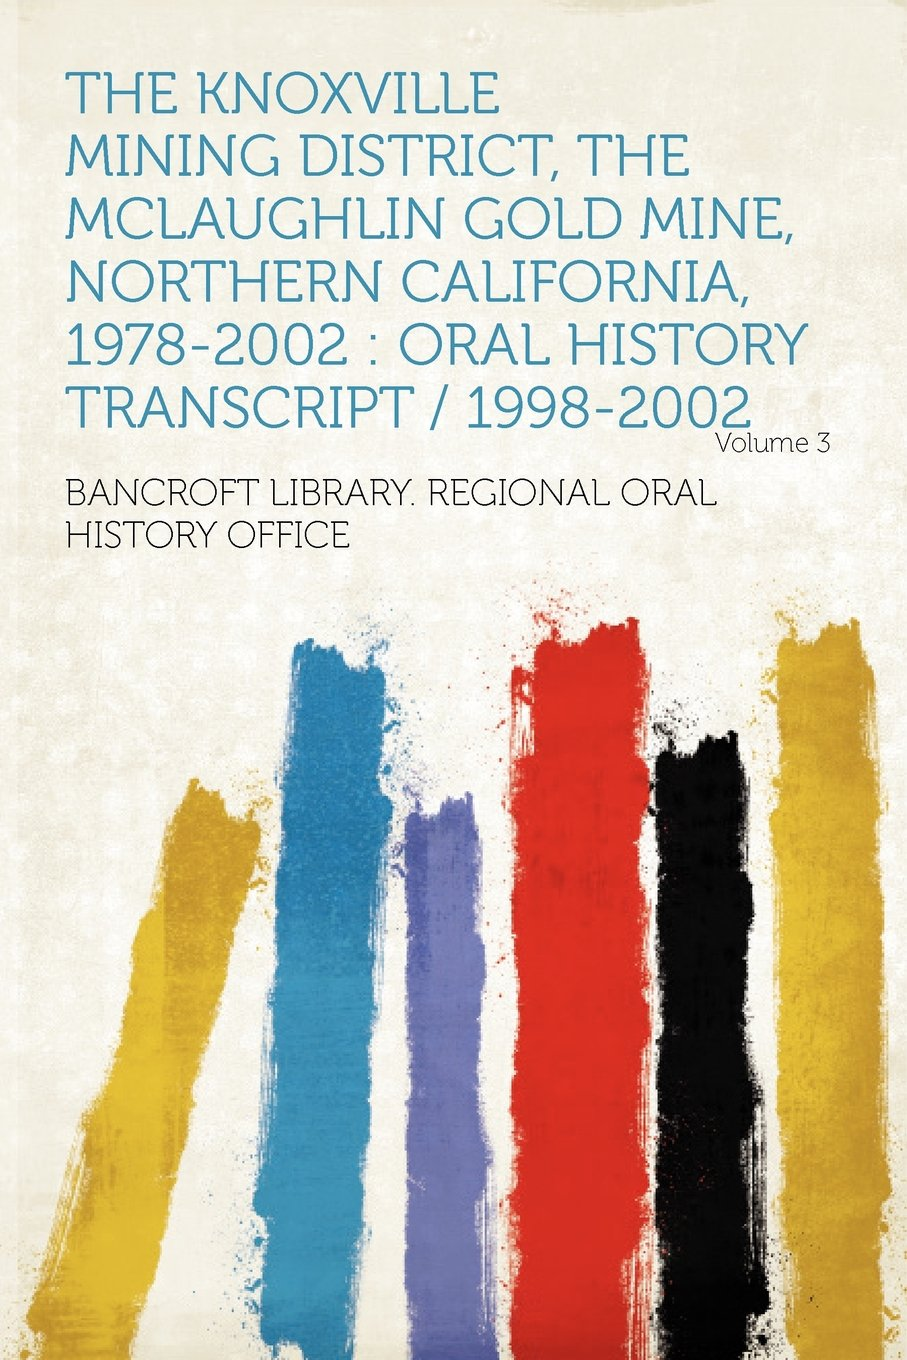 Download The Knoxville Mining District, the McLaughlin Gold Mine, Northern California, 1978-2002: Oral History Transcript / 1998-2002 Volume 3 pdf